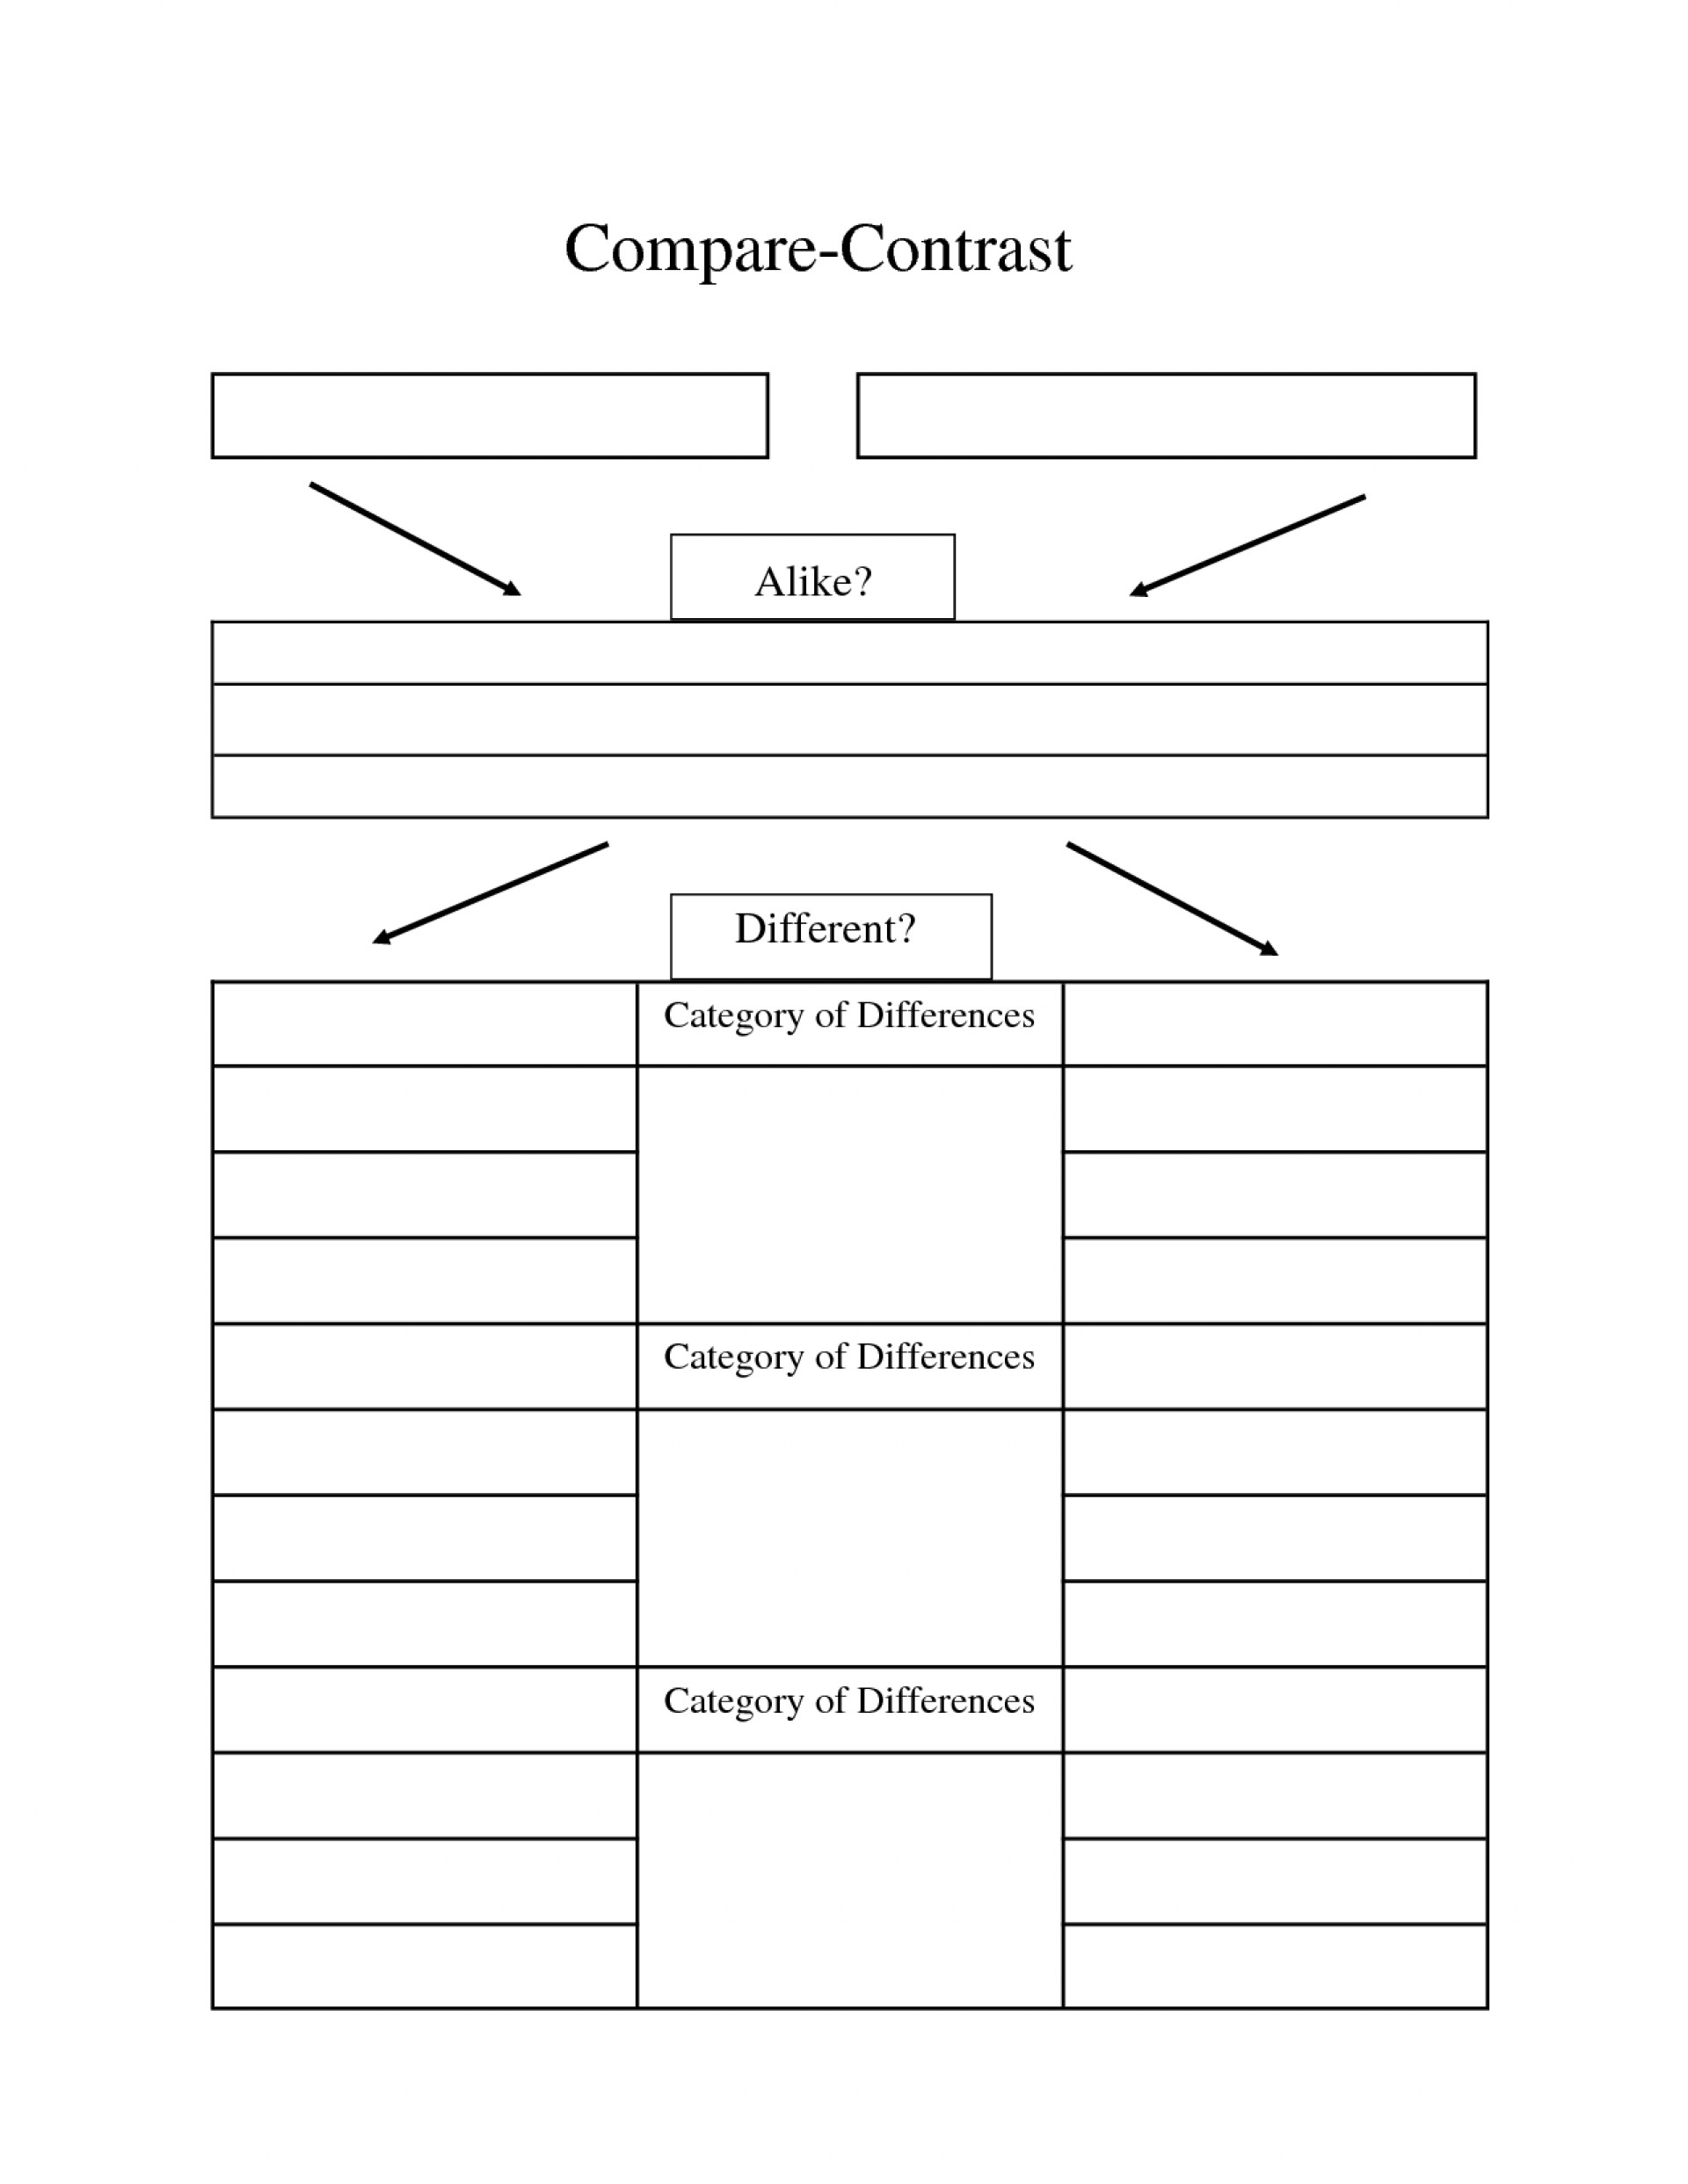 001 Compare And Contrast Essay Graphic Organizer Wondrous Middle School 1920